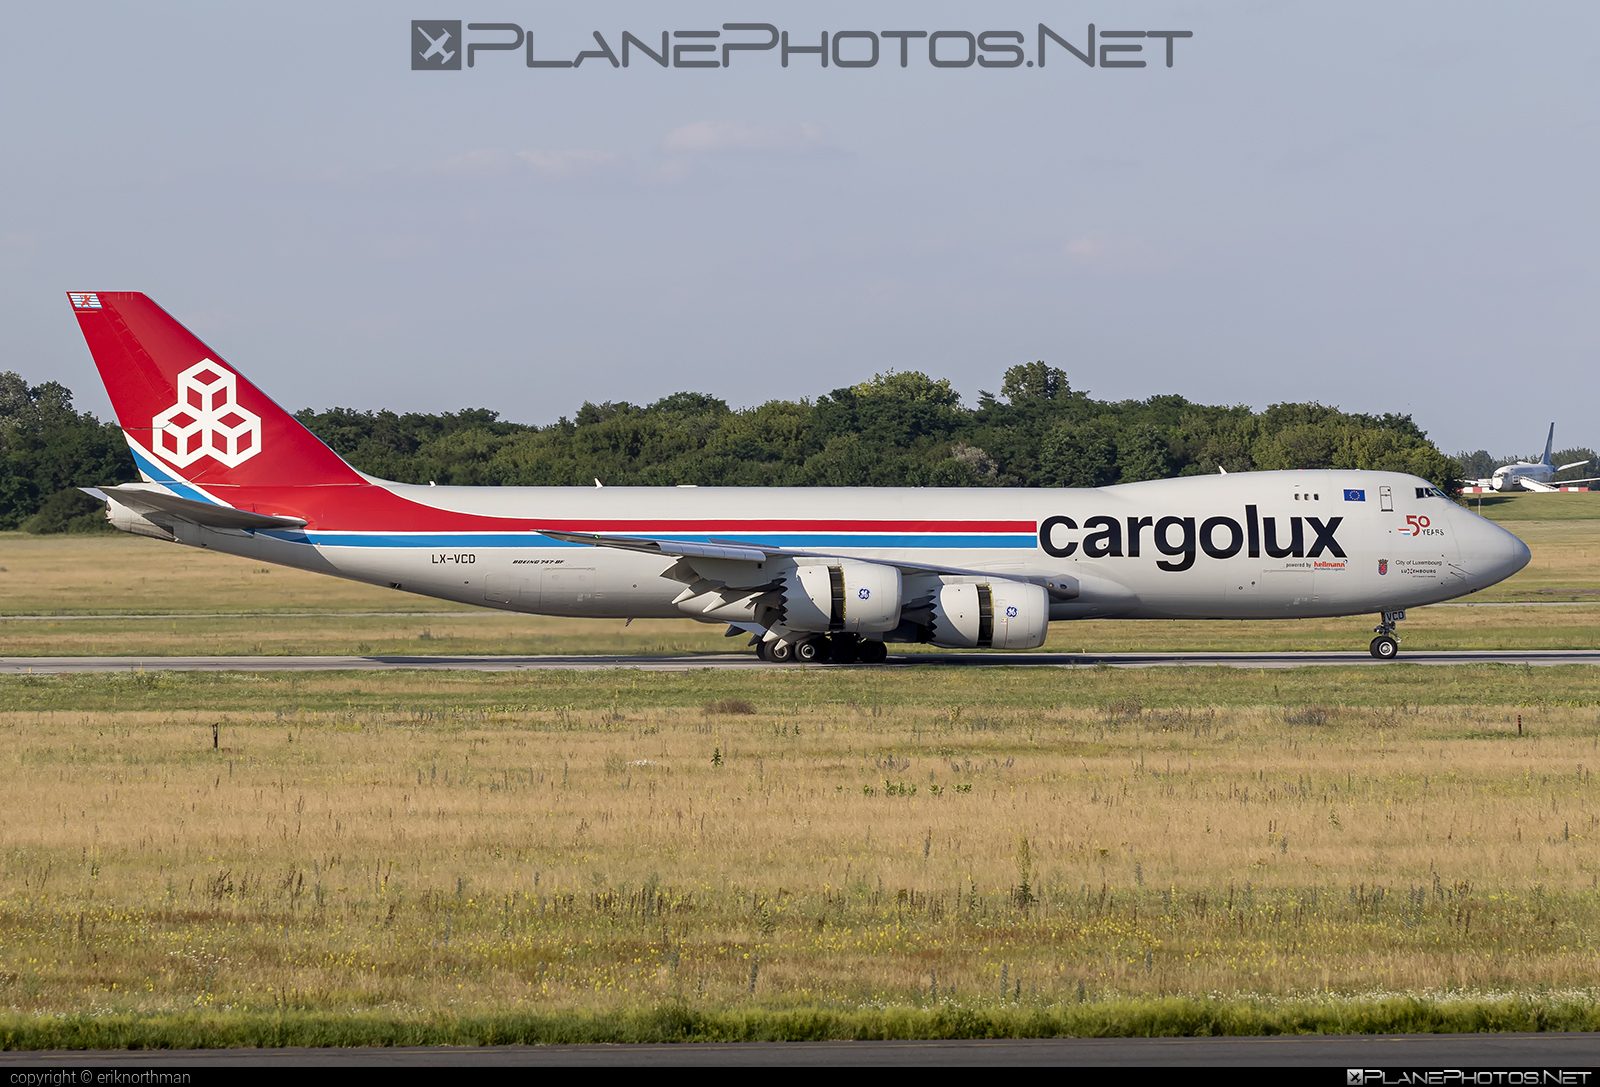 Boeing 747-8F - LX-VCD operated by Cargolux Airlines International #b747 #b747f #b747freighter #boeing #boeing747 #cargolux #jumbo